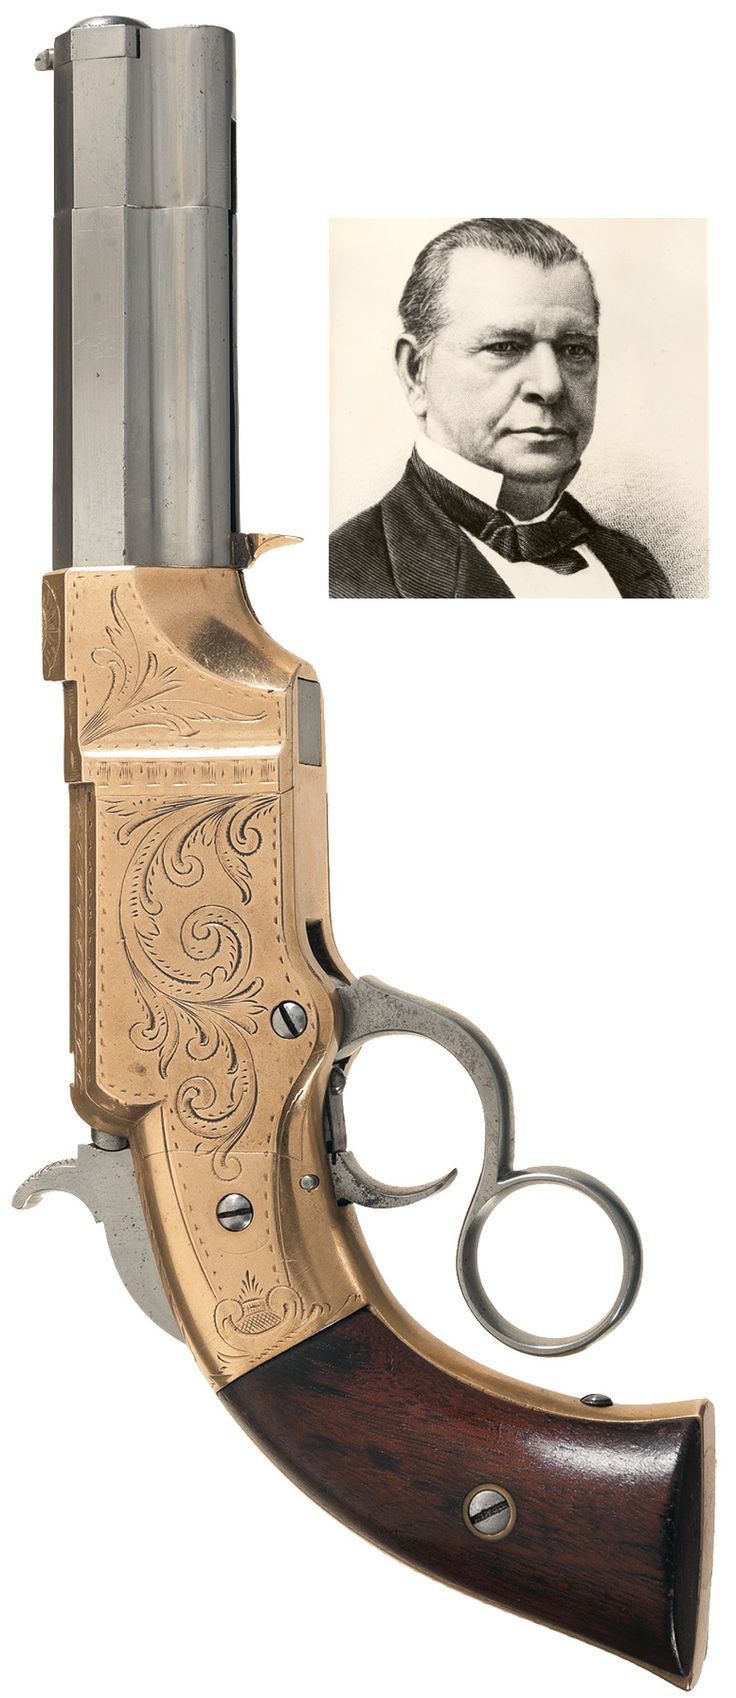 Rare Factory Engraved Volcanic Lever Action No.1 Pocket Pistol.  Lever action…Loading that magazine is a pain! Get your Magazine speedloader today! http://www.amazon.com/shops/raeind